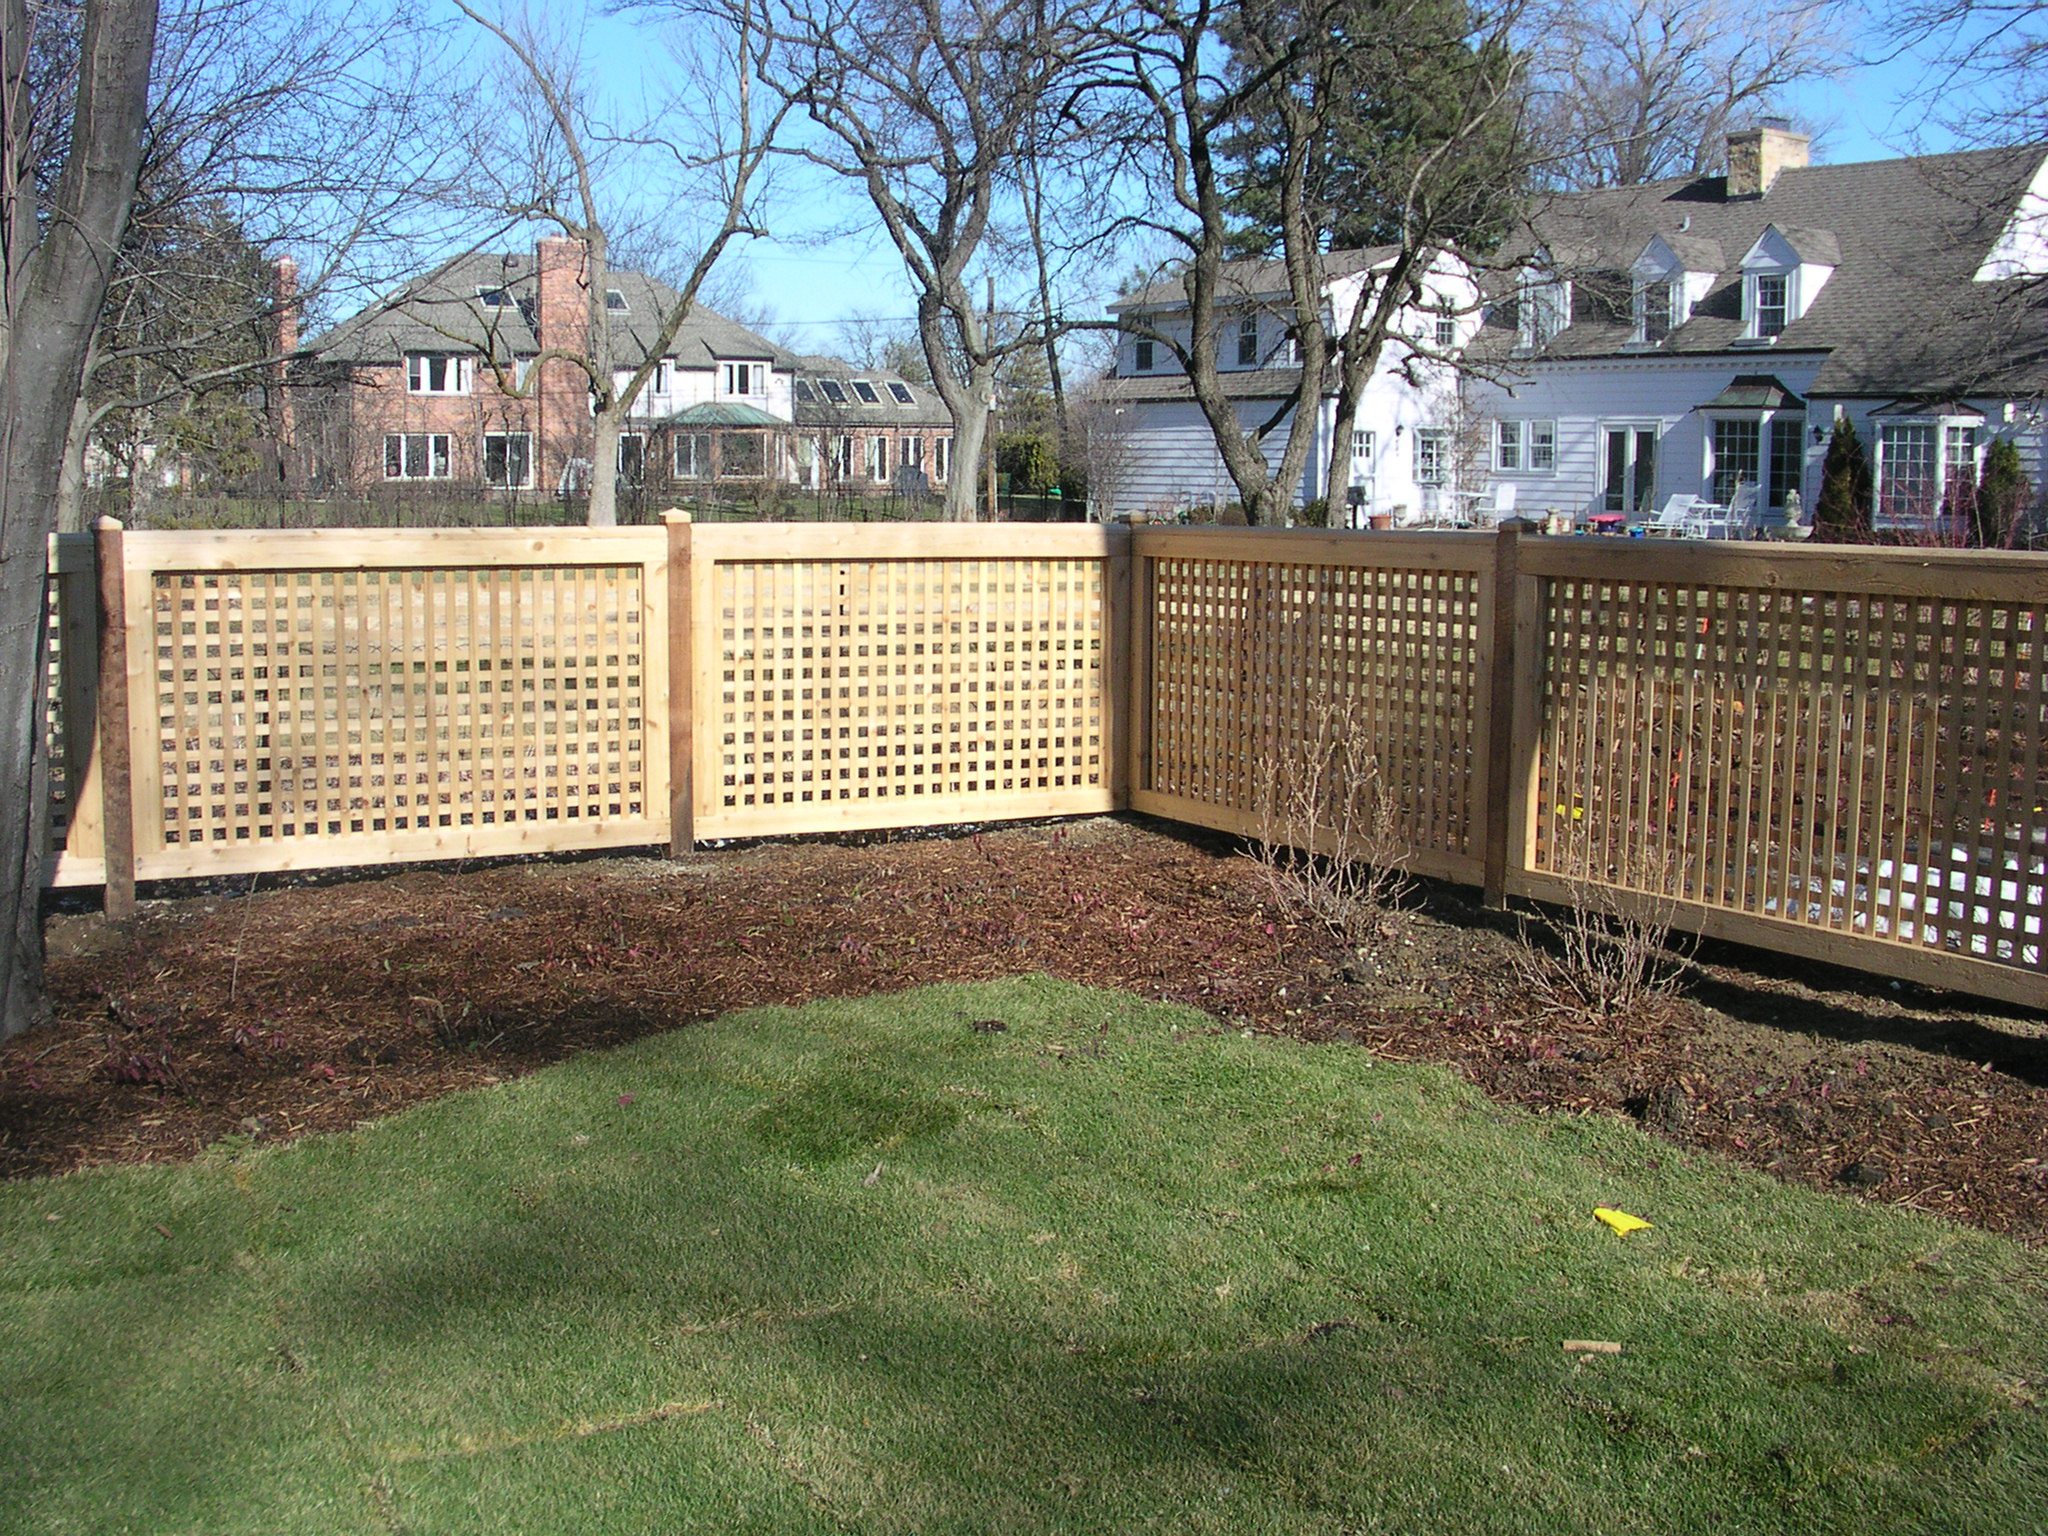 How to install lattice fence how to make fence for Lattice screen fence